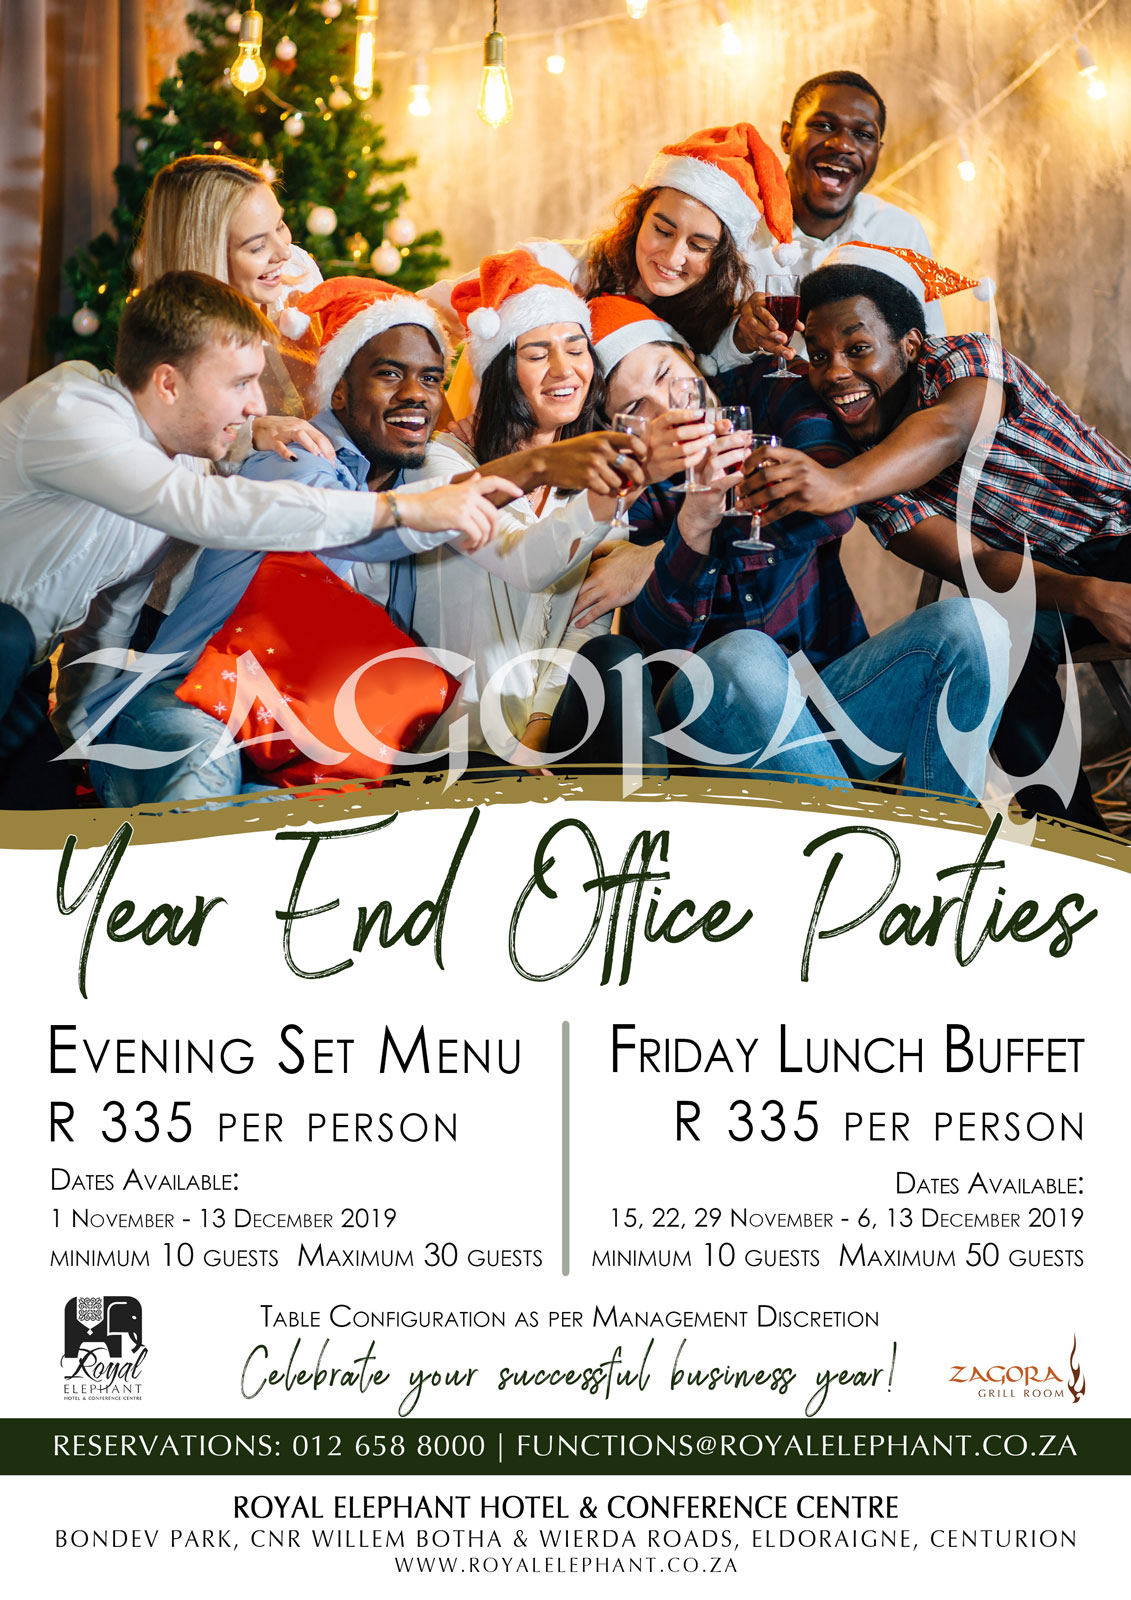 Year-End Office Party at Zagora Grill Room